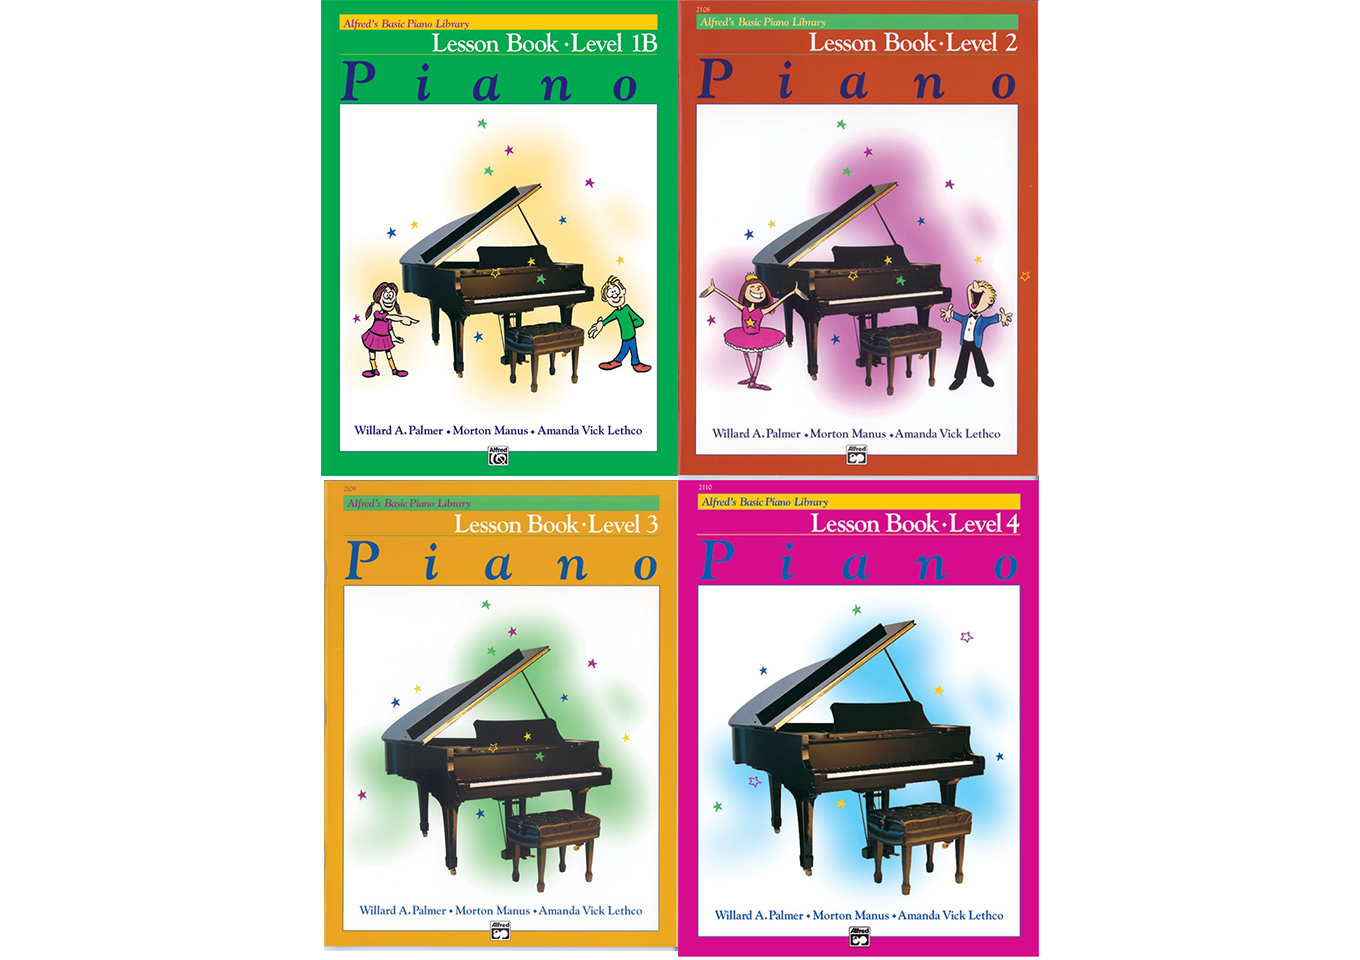 Alfred's Basic Piano Library Lesson Books - All Levels